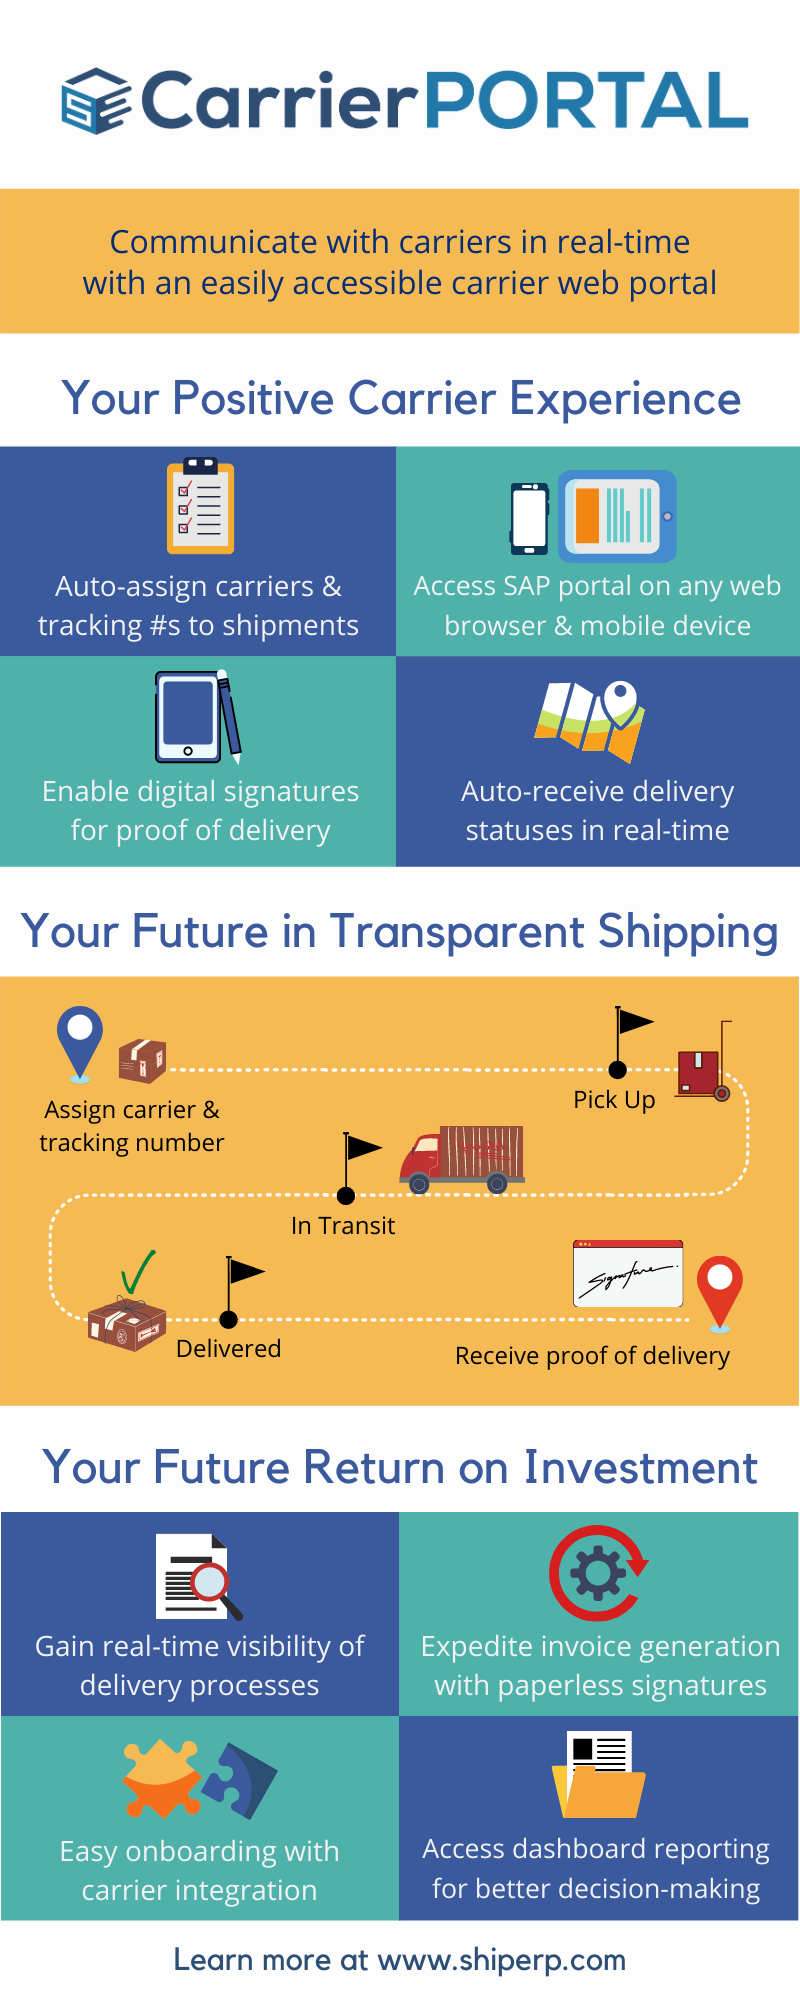 CarrierPORTAL Infographic